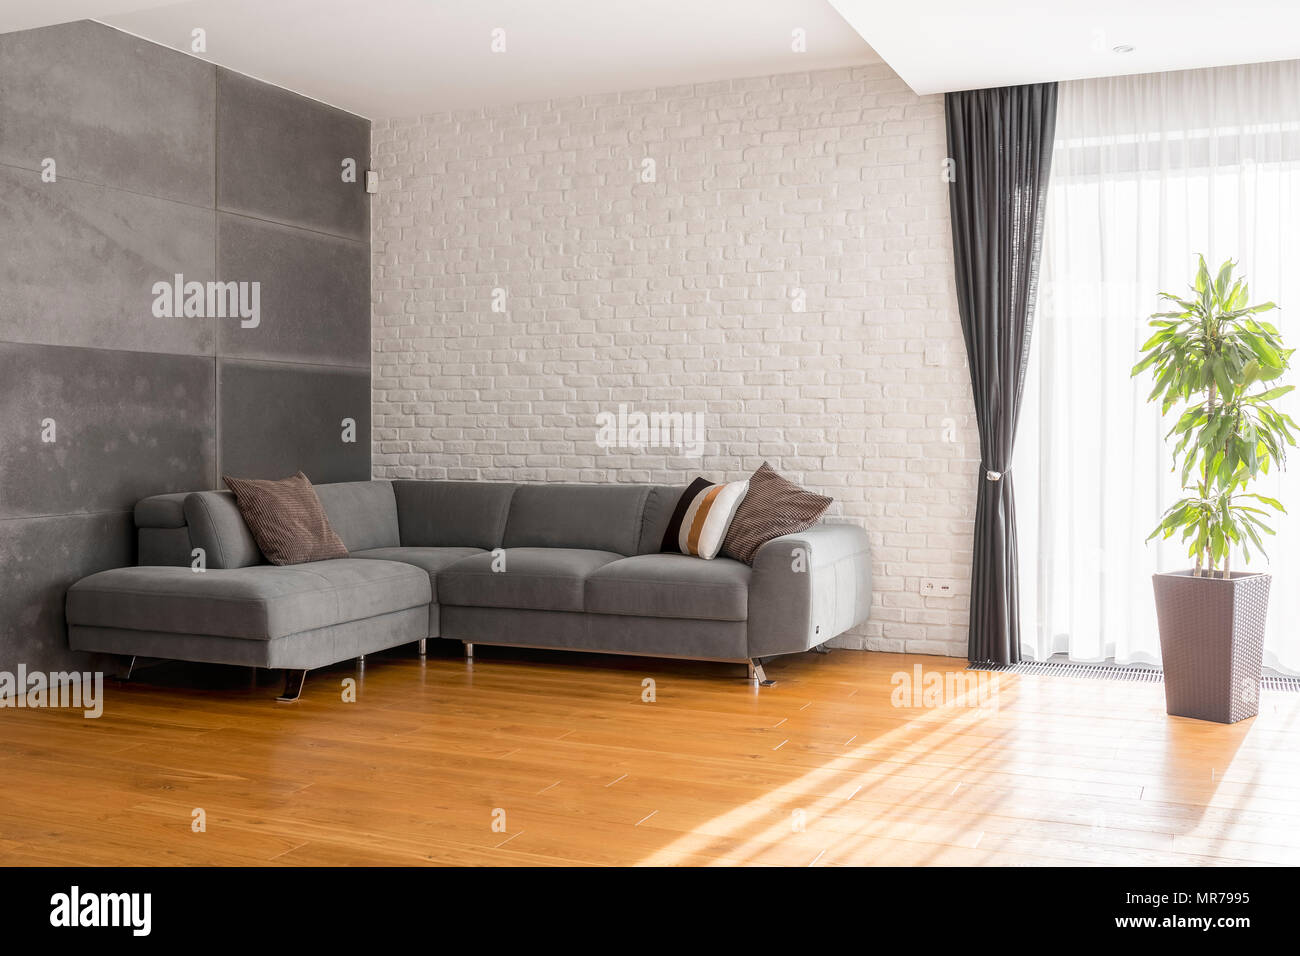 Peachy Cozy Grey Living Room With Sofa Wood Floor Panels Plant Gmtry Best Dining Table And Chair Ideas Images Gmtryco